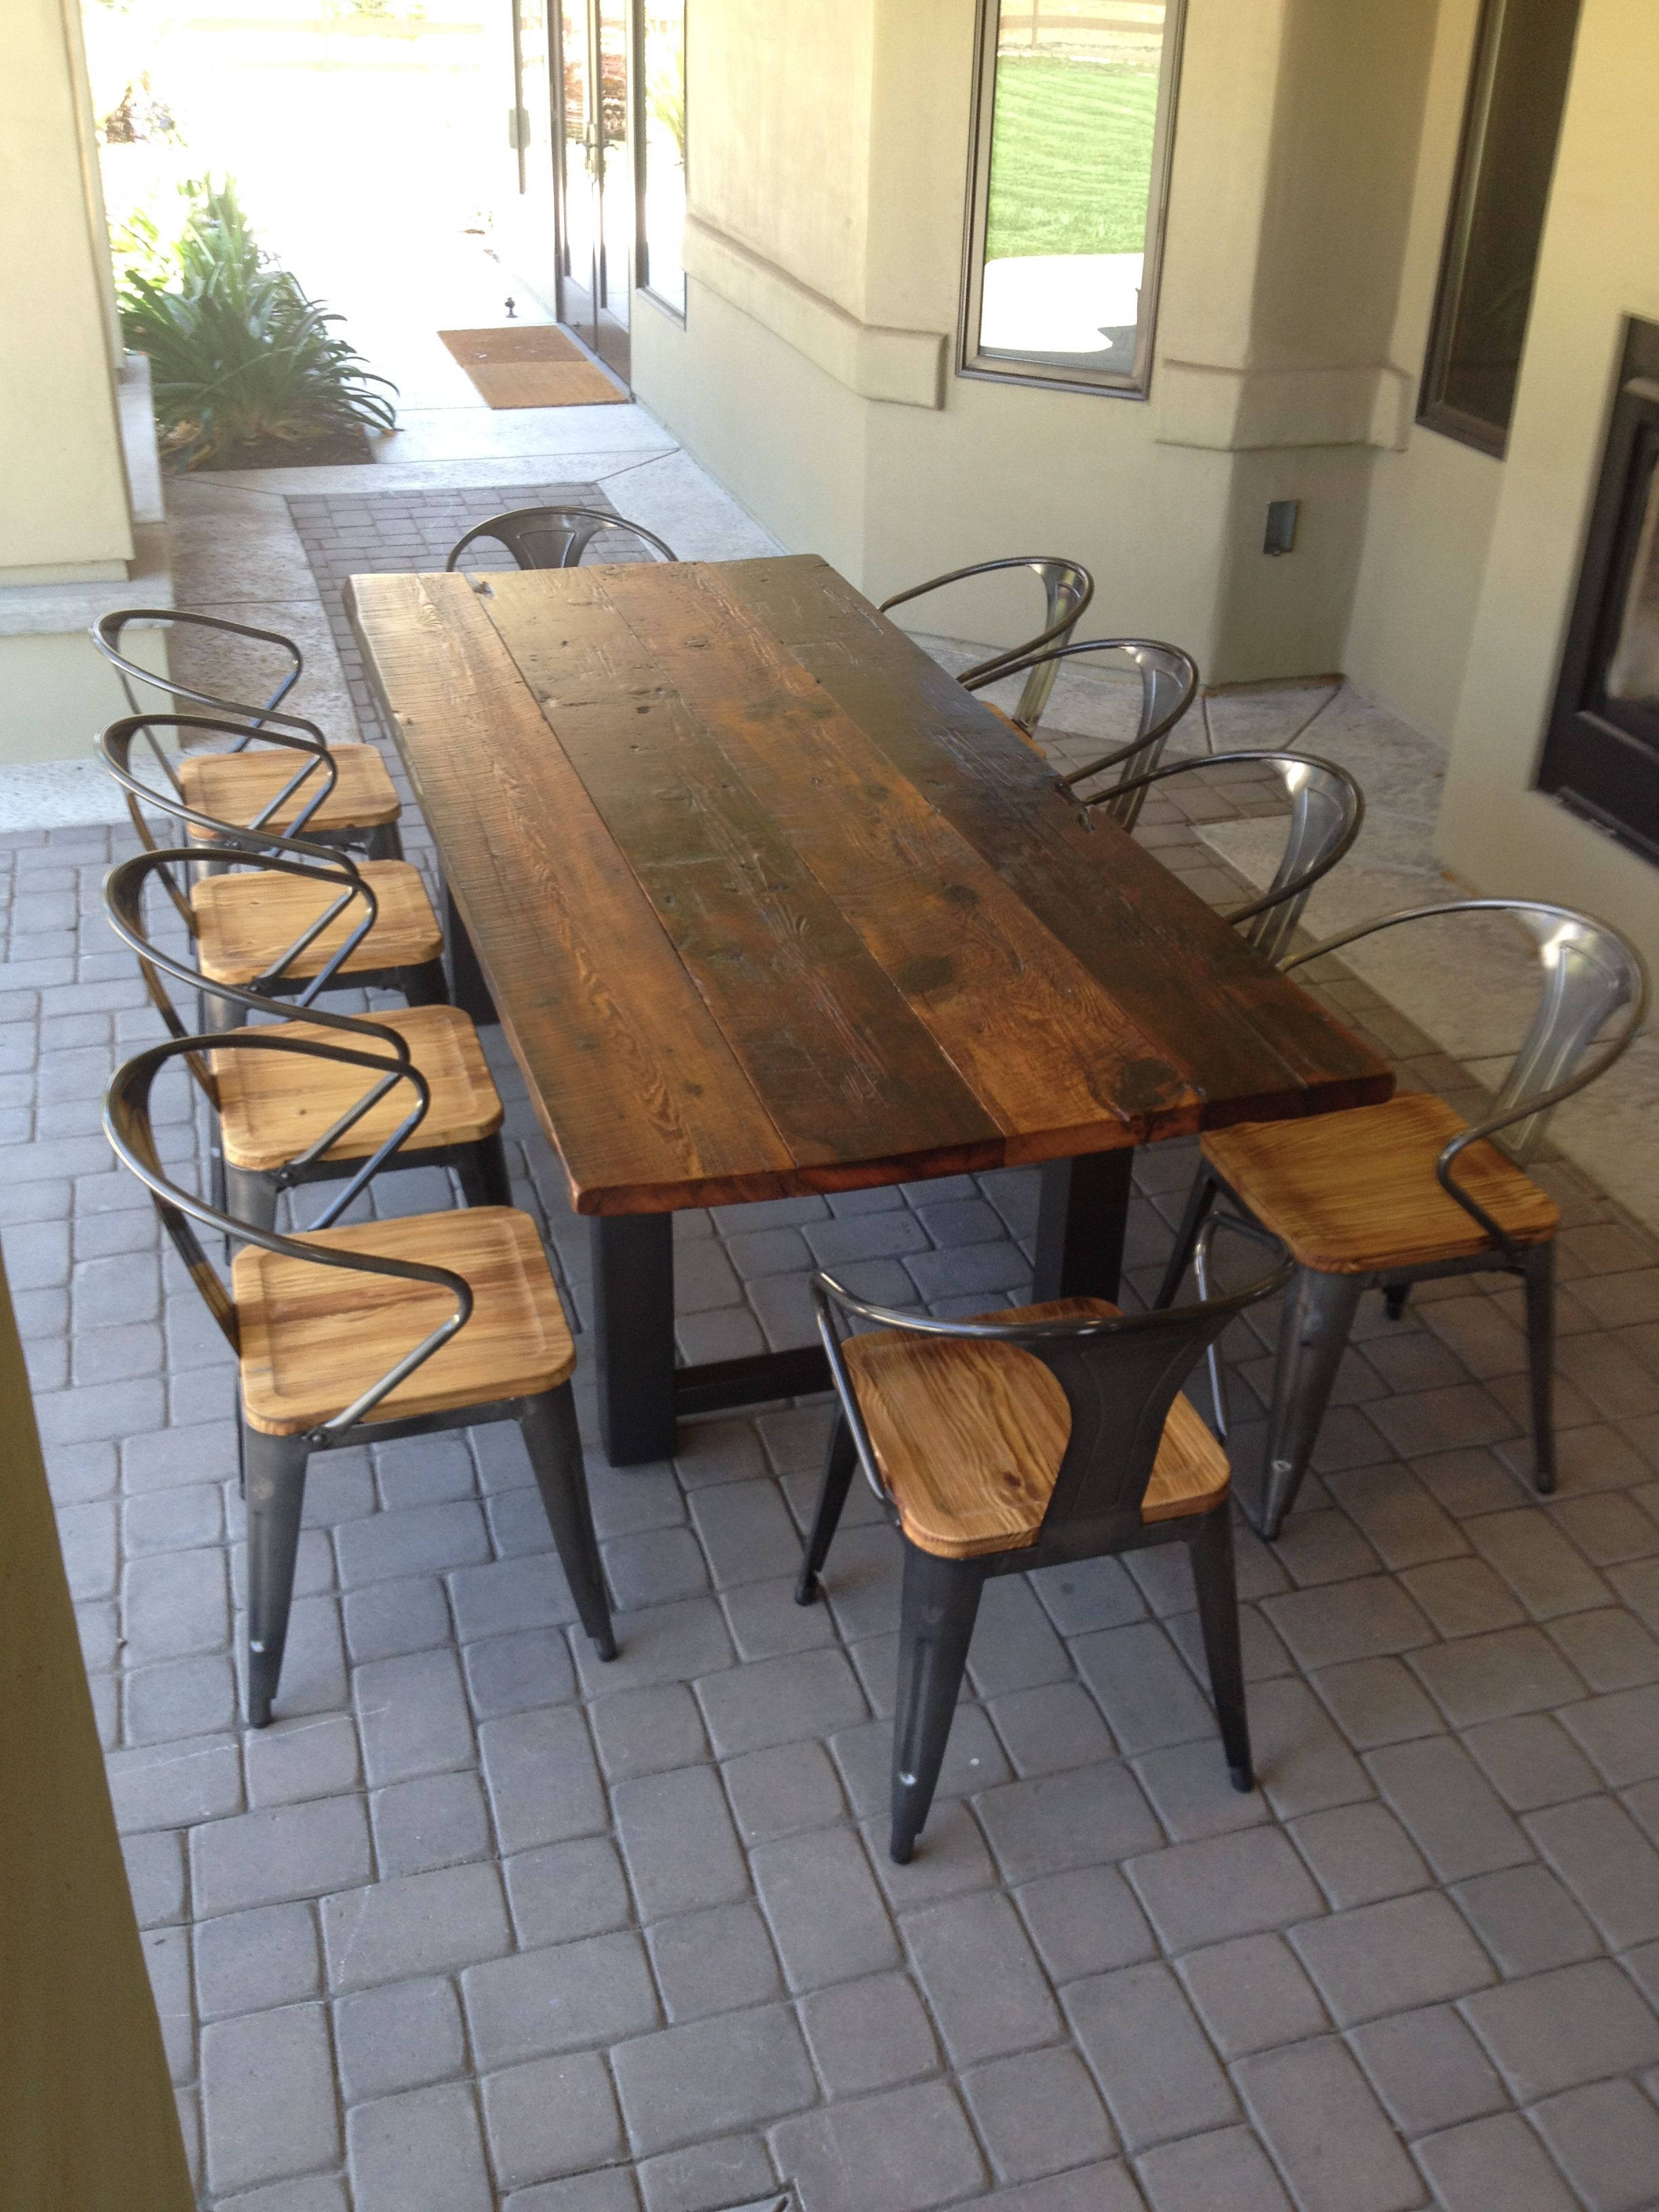 Marvelous Reclaimed Wood And Steel Outdoor Dining Table 1